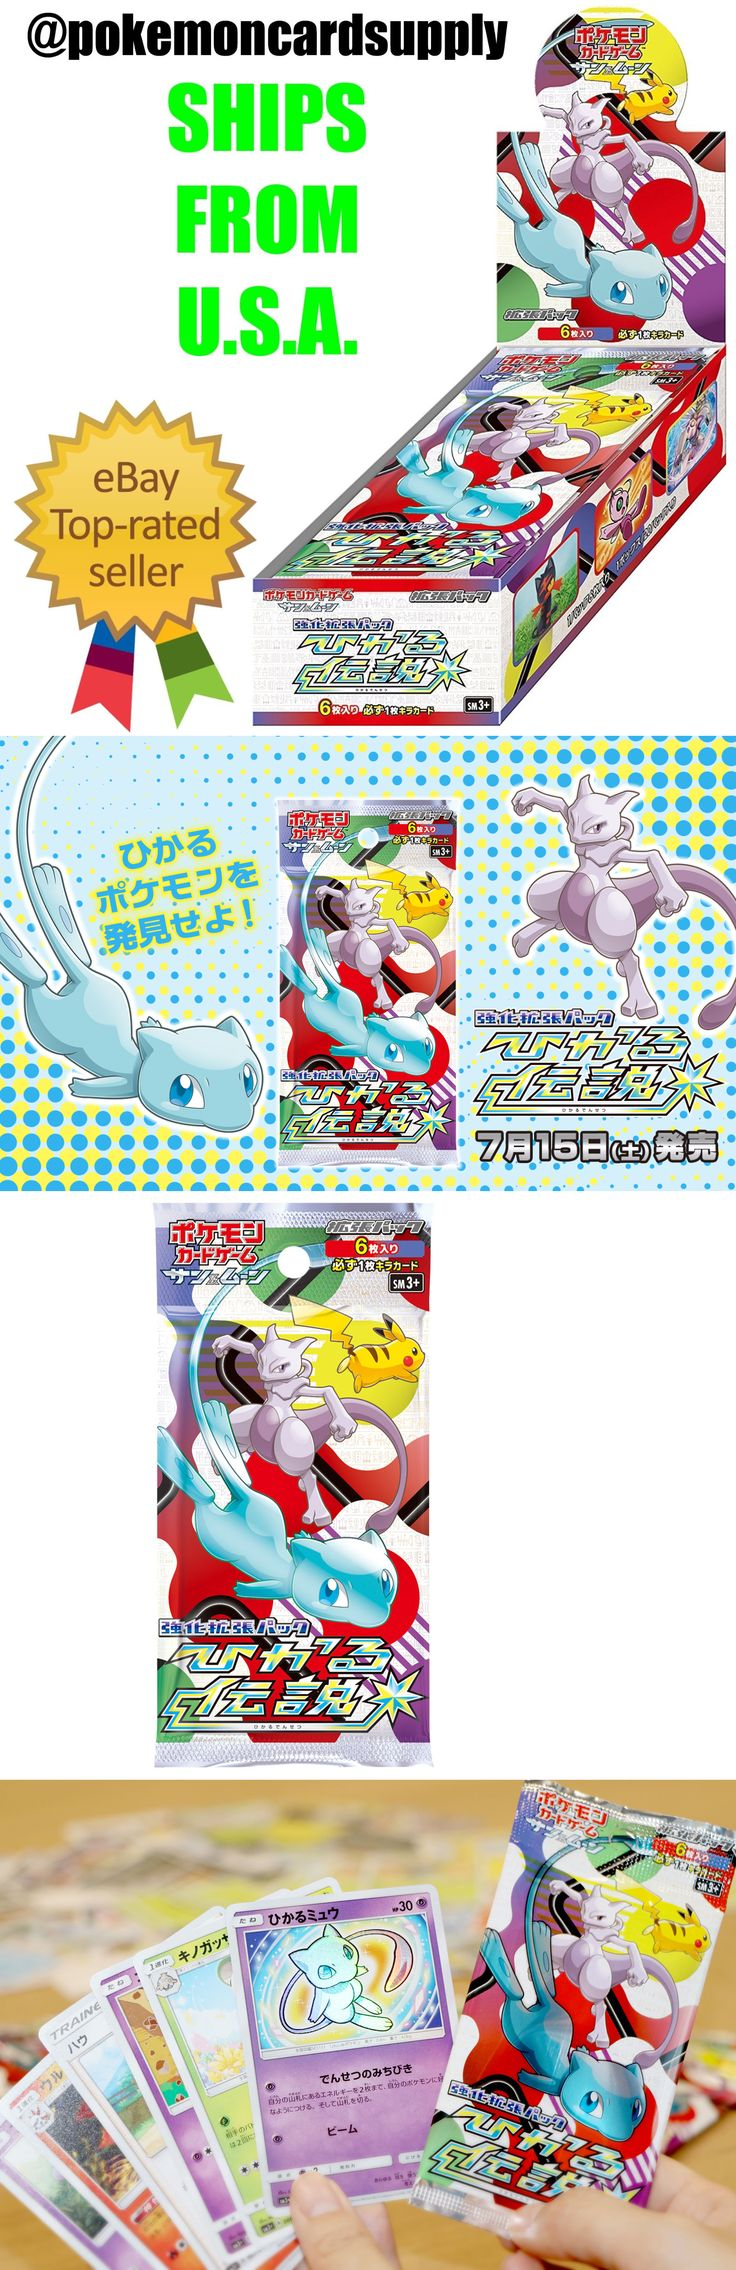 Pok mon Sealed Booster Packs 4301: Pokemon Card Sun Moon Shining Legends Sm3+ Hikaru Densetsu Booster Box From Usa! -> BUY IT NOW ONLY: $64.99 on eBay!